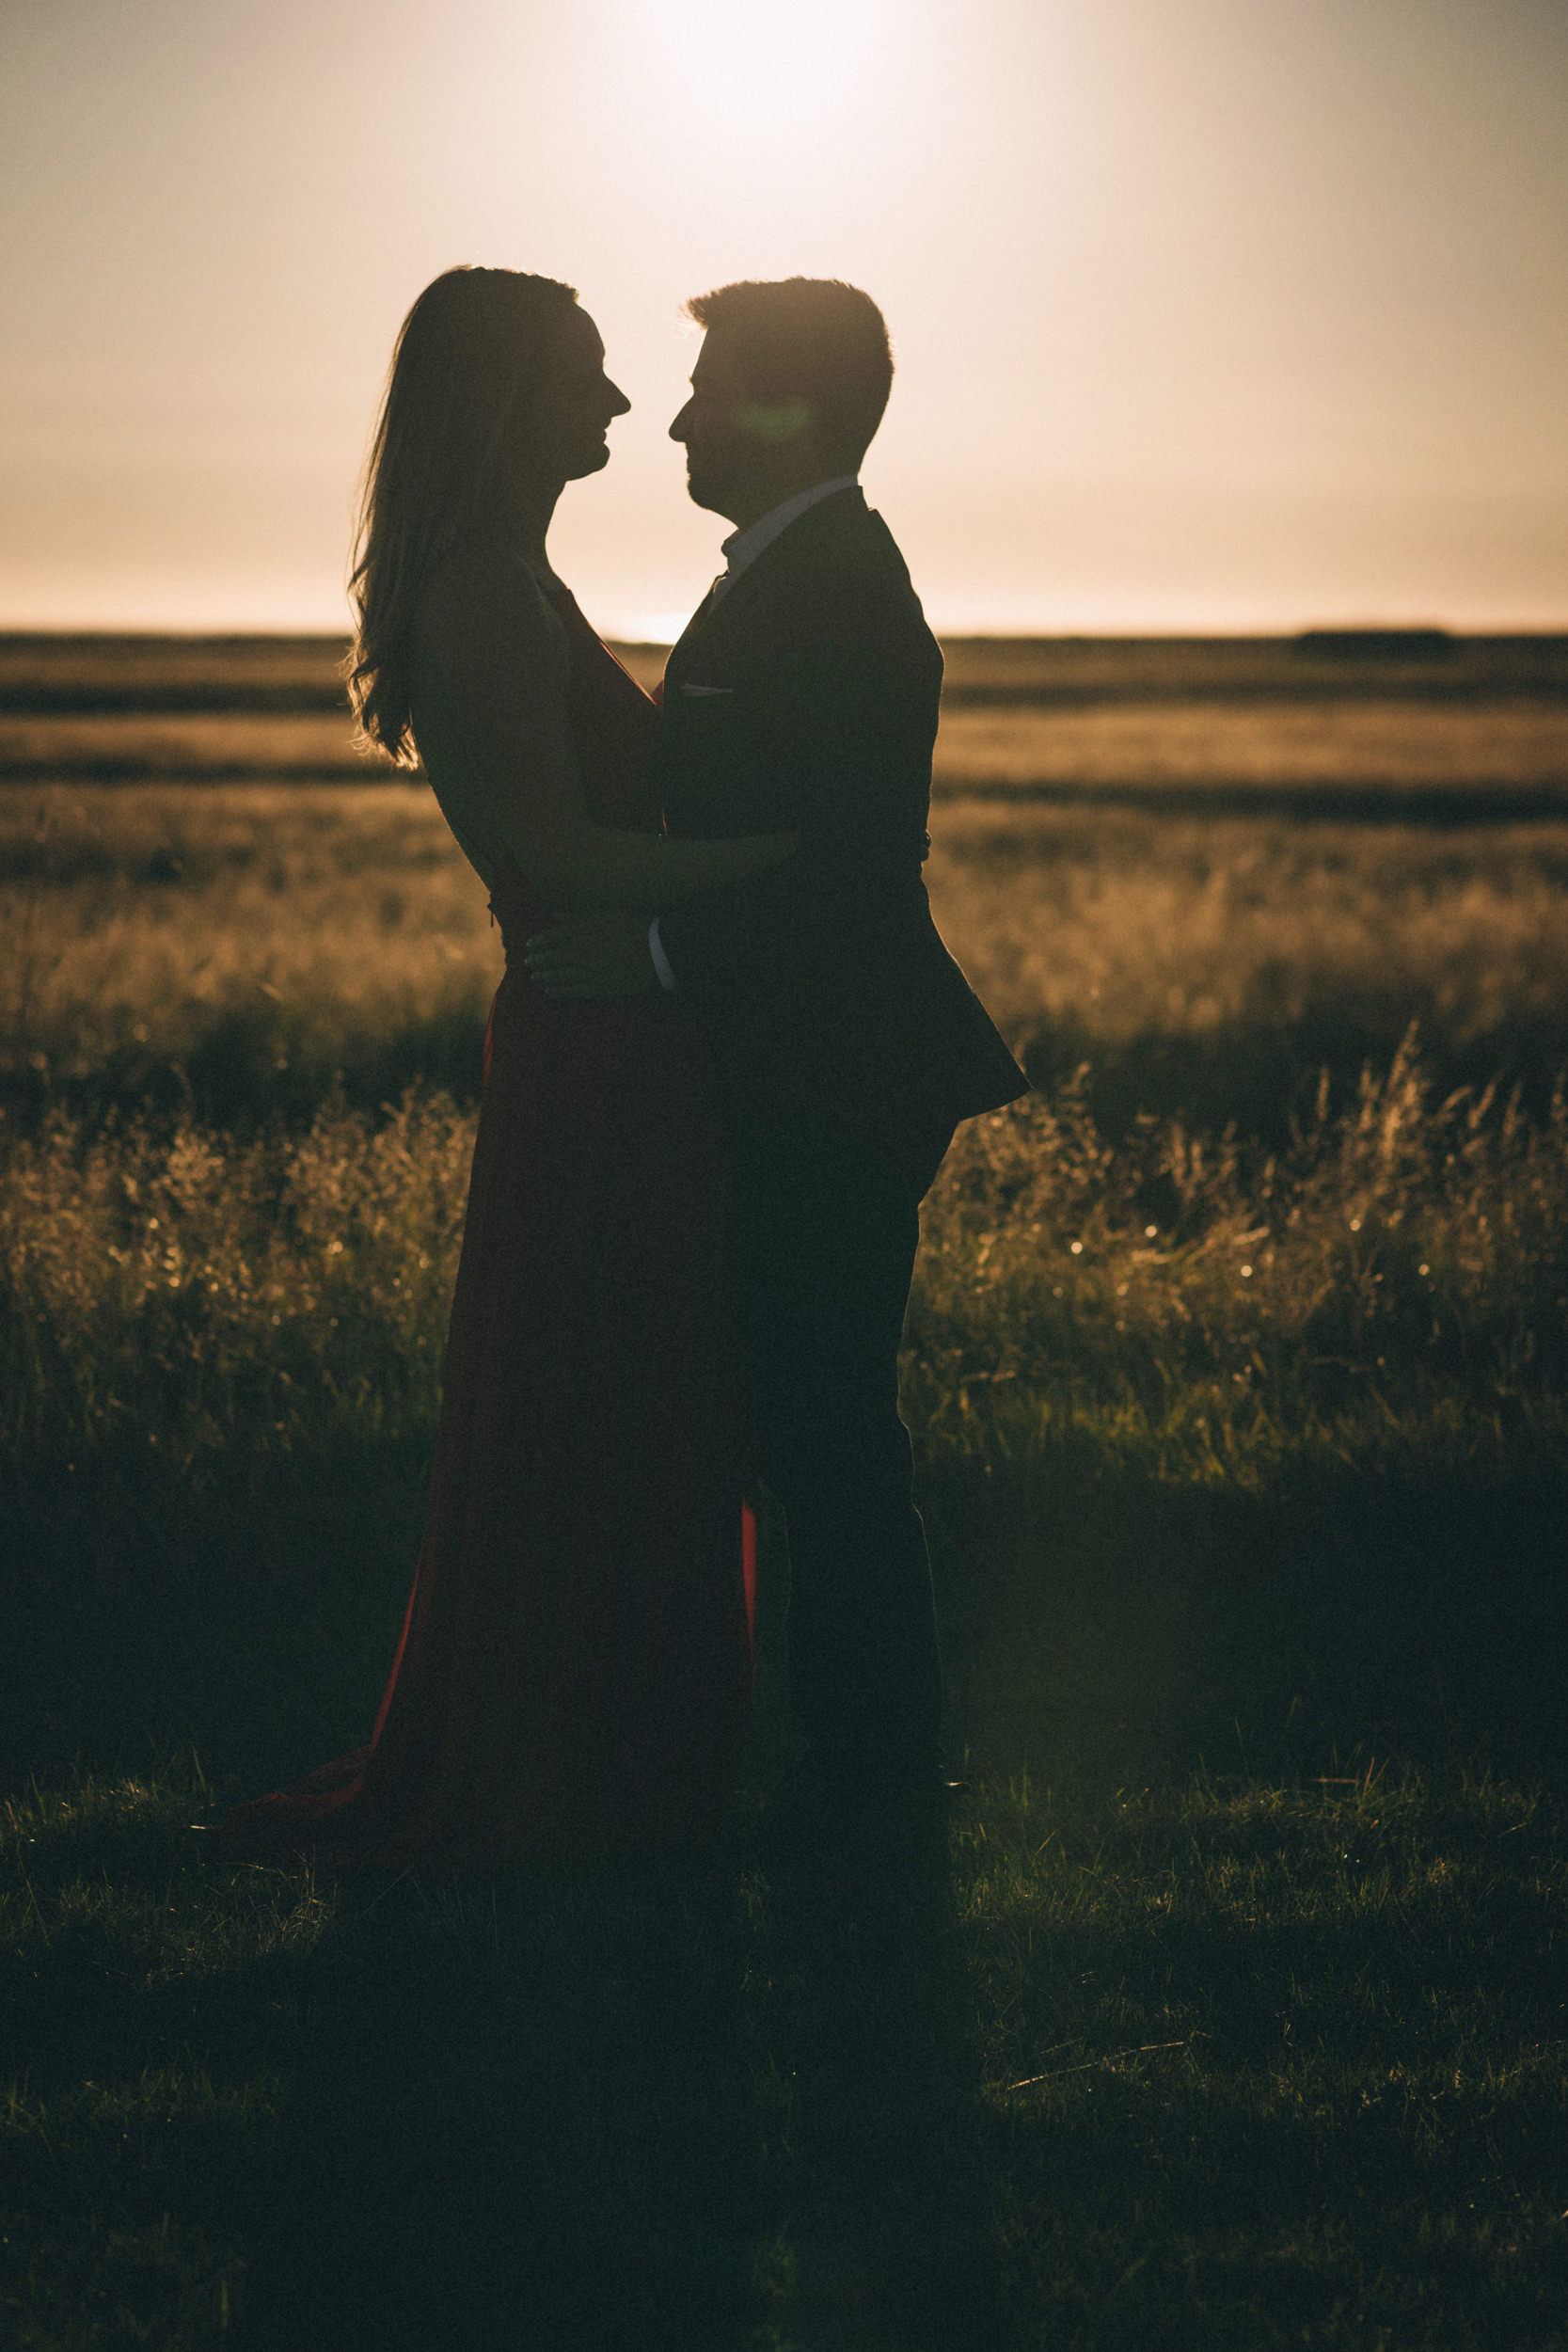 Sarah-Katherine-Davis-Photography-Iceland-Adventure-Elopement-Photographer-Louisville-Kentucky-Wedding-Photographer-Travel-Vik-Beach-Engagement-Session-Red-Dress-Reynisfjara-270edit.jpg